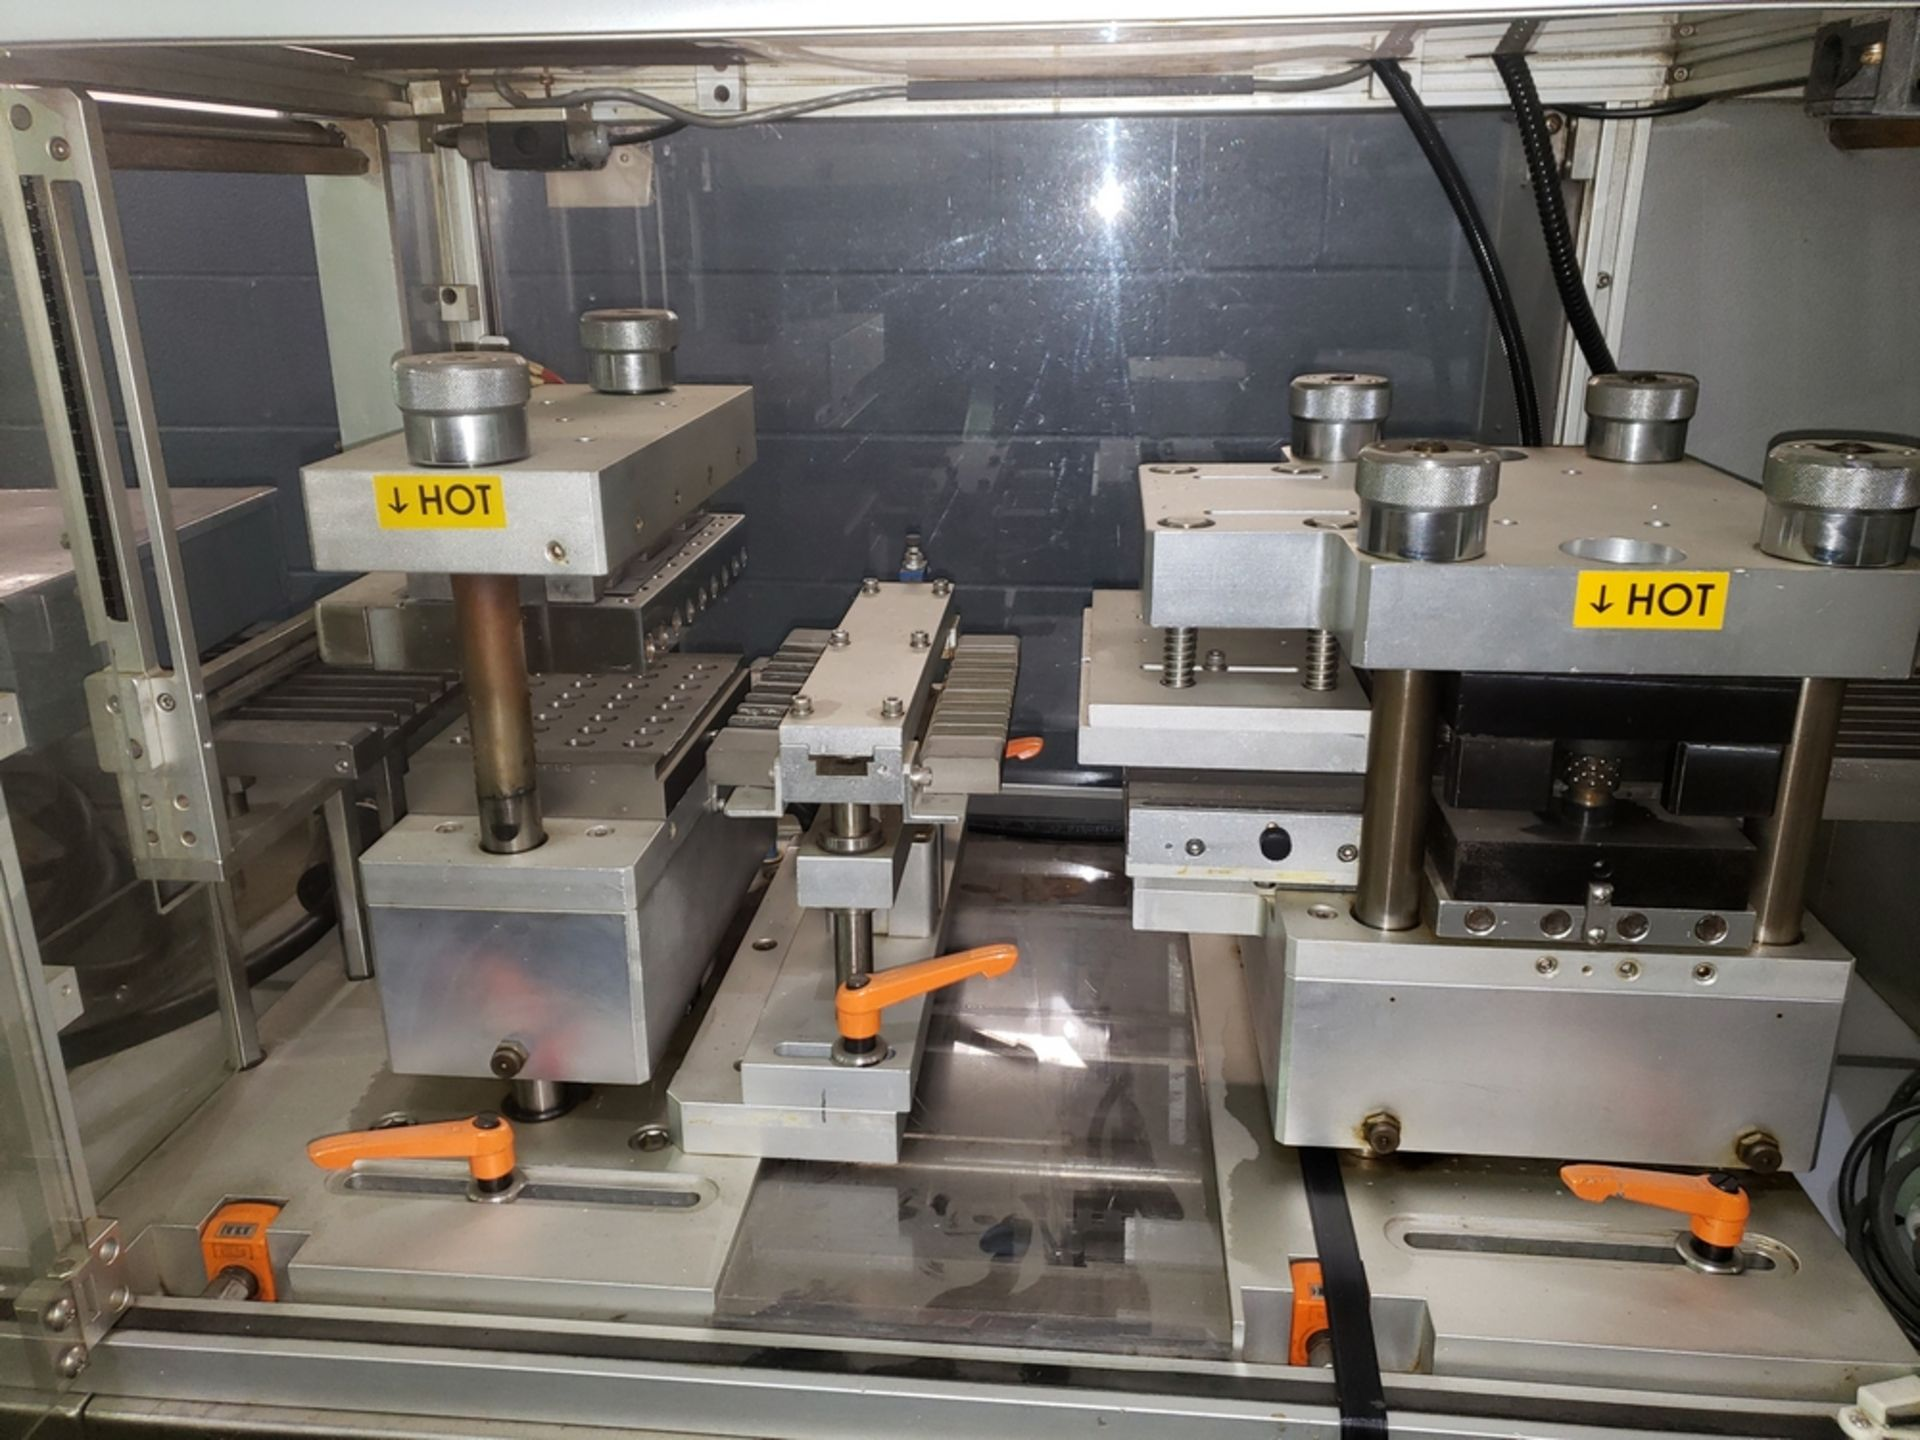 Lot 13 - Hoong-A Corp thermoforming blister filler, model Ministar-N5, rated 30-60 strokes/minute, 200 mm